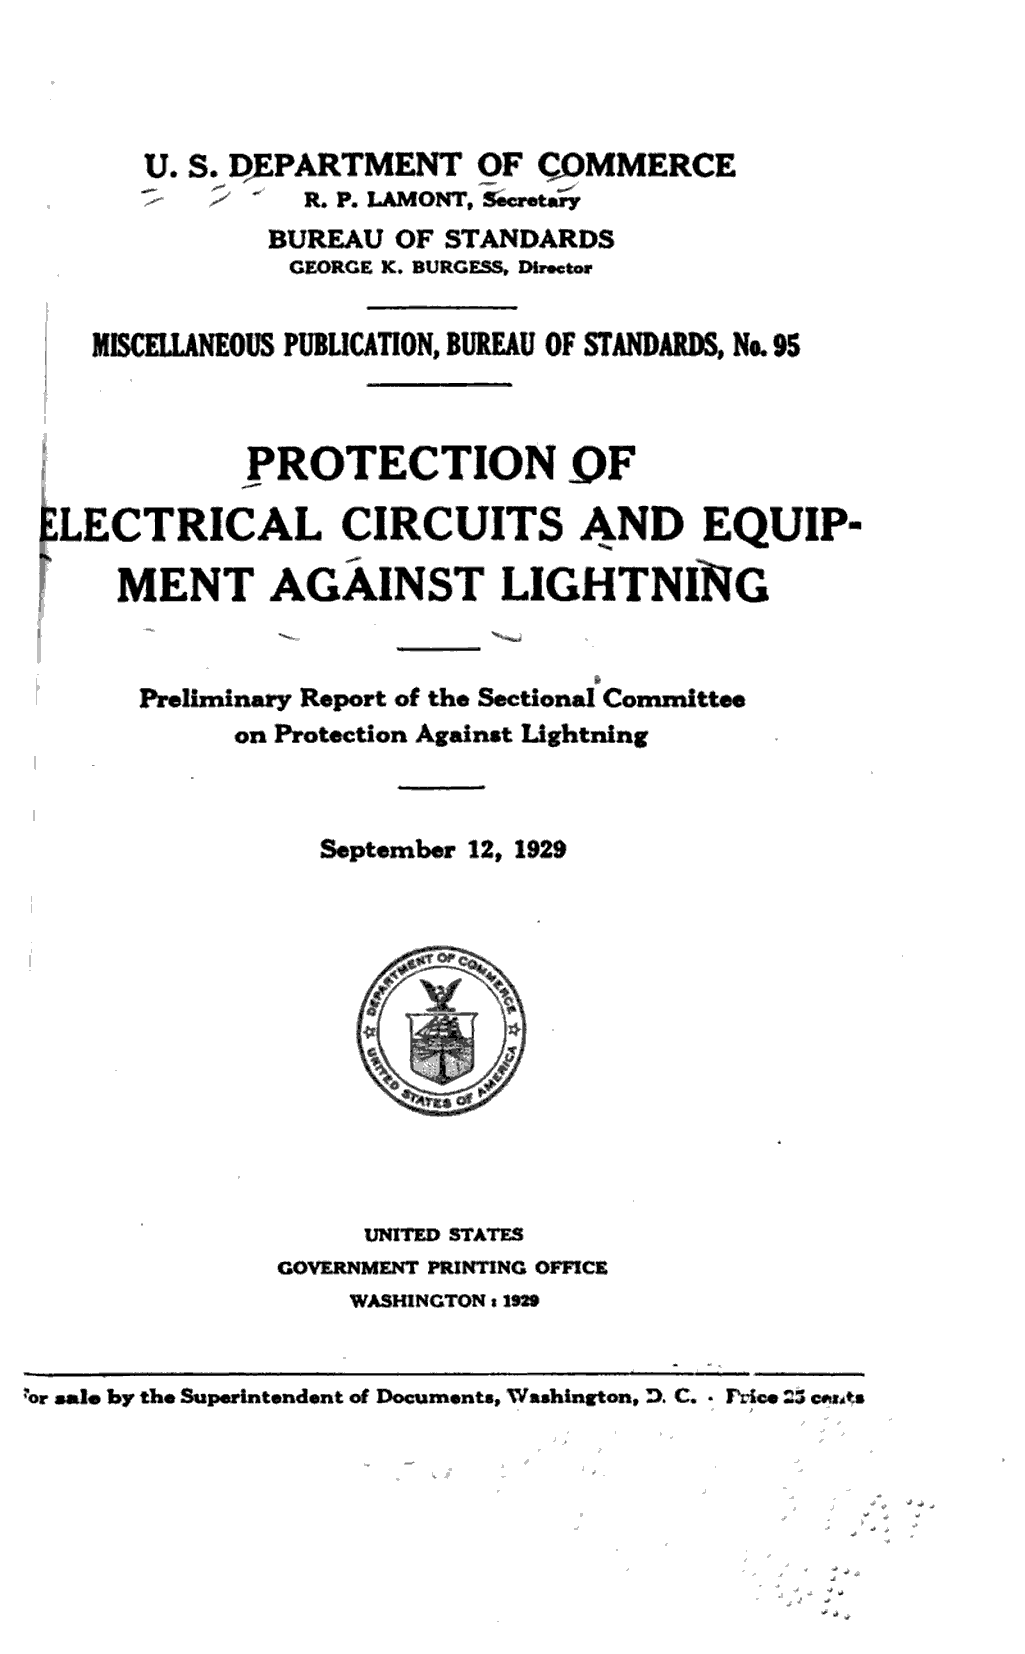 Protection of electrical circuits and equipment against lightning